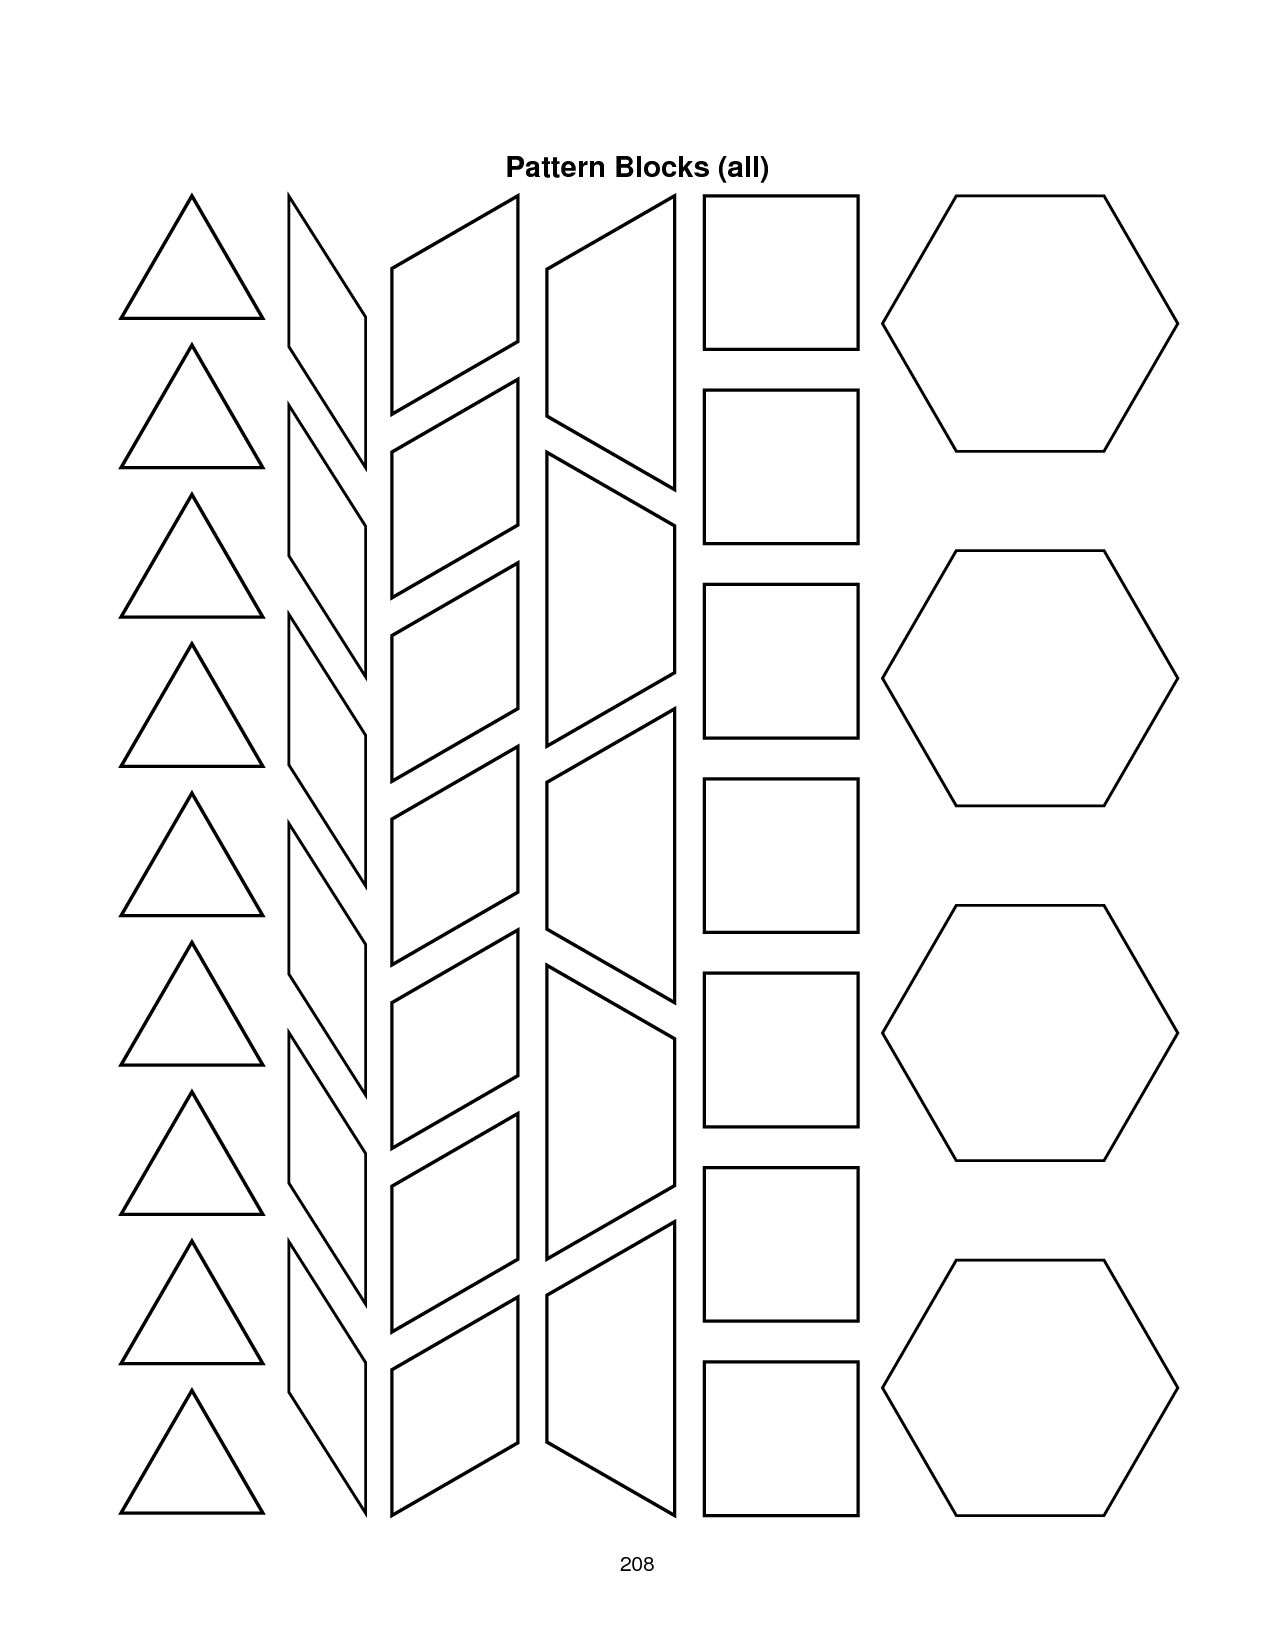 small resolution of 28 Images Of Blank Alphabet Pattern Block Template   Migapps with Blank Pattern  Block Templates…   Pattern block templates